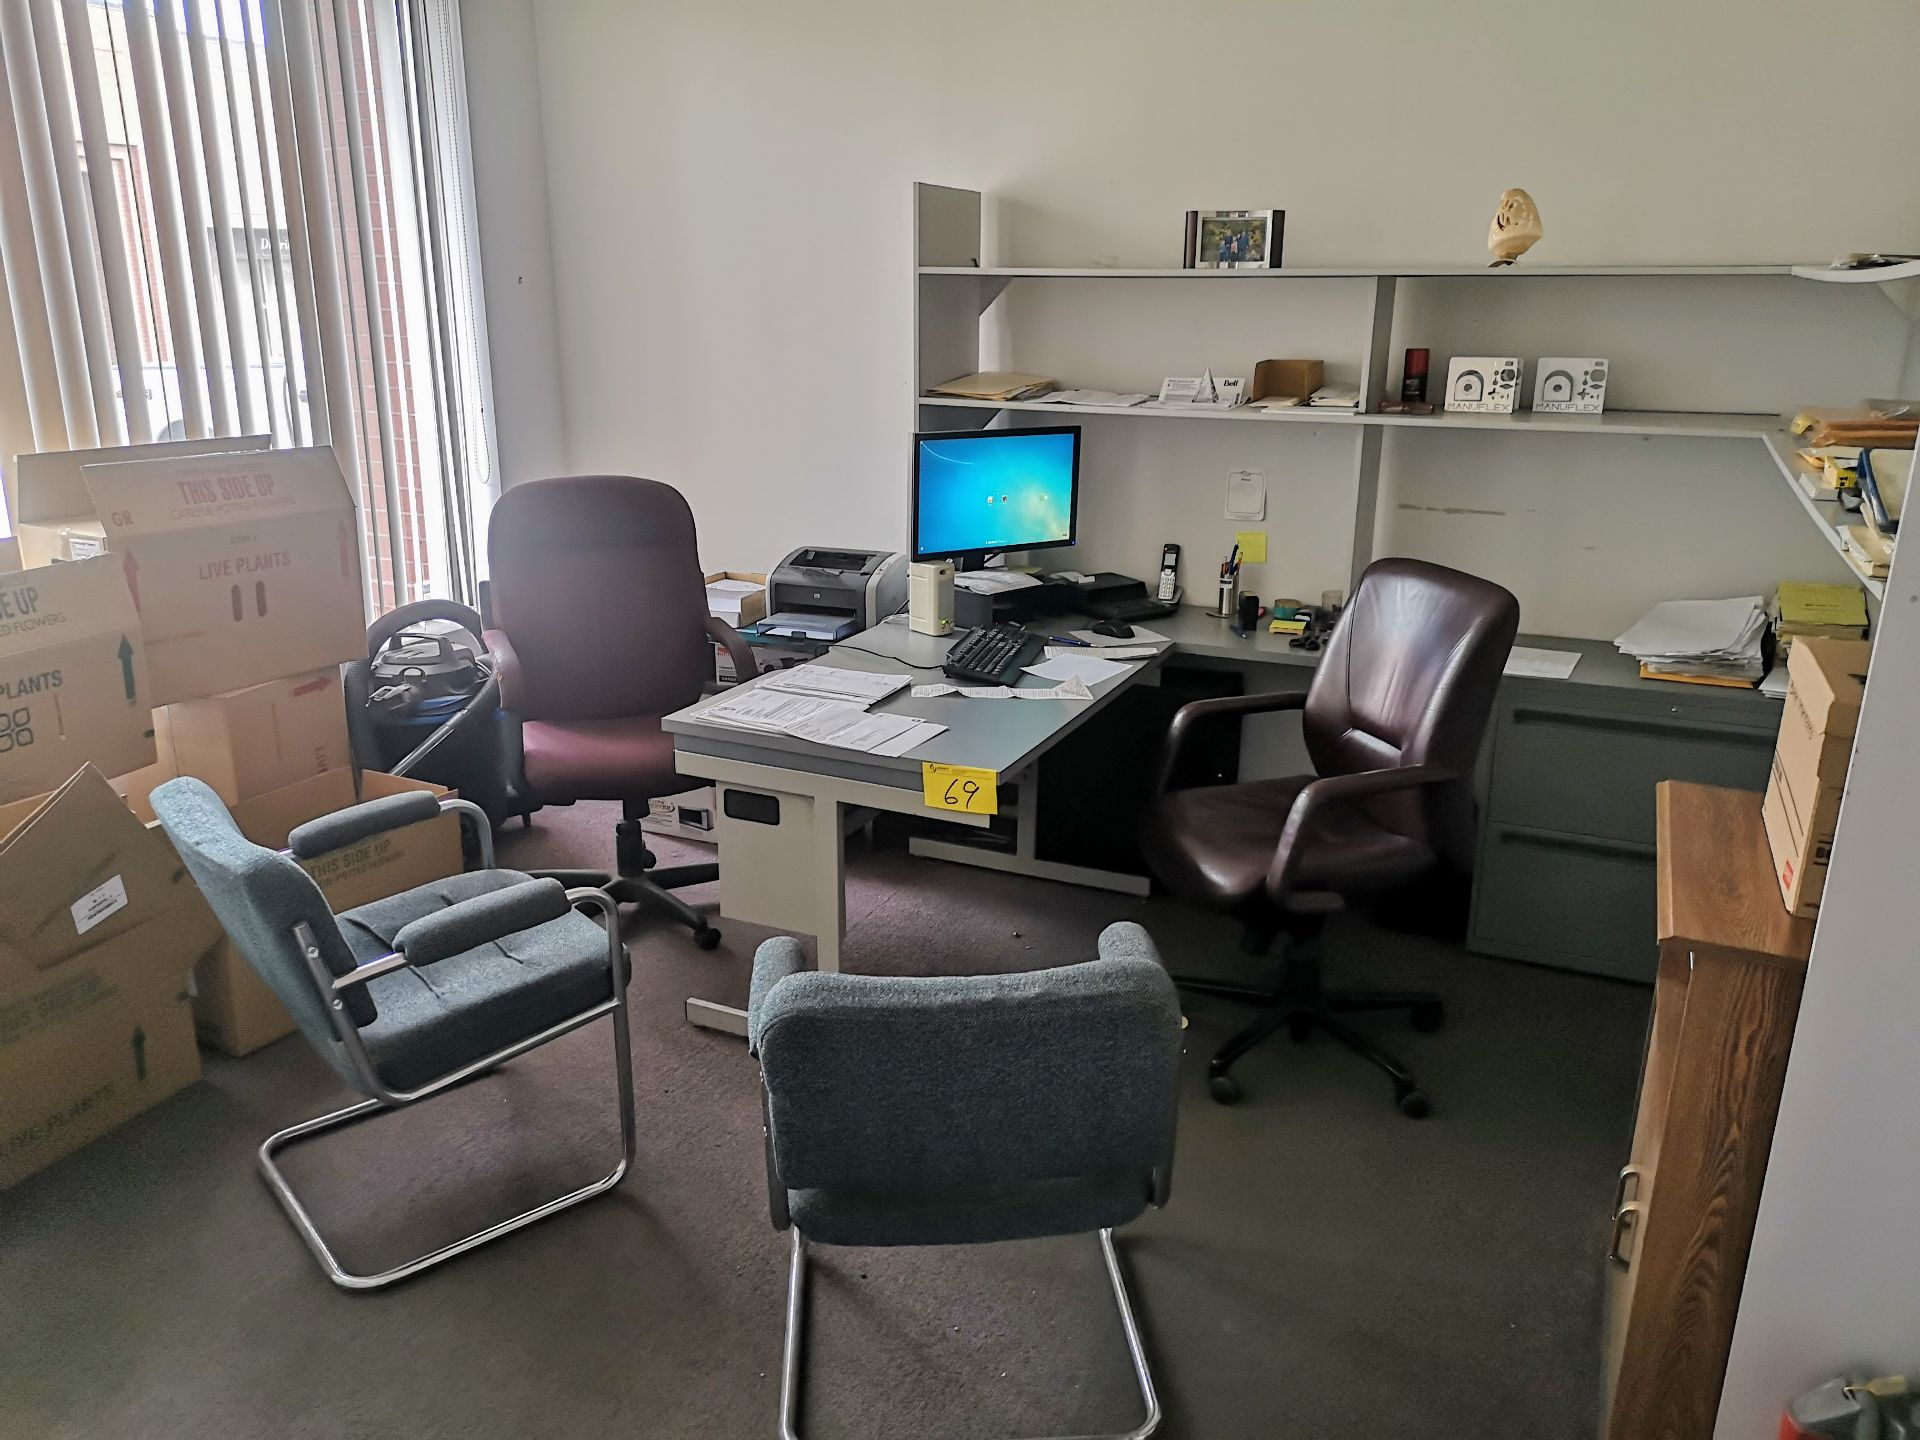 Lot 69 - LOT CONTENTS OF INNER OFFICE (NO PERSONAL EFFECTS OR COMPUTER EQUIPMENT)